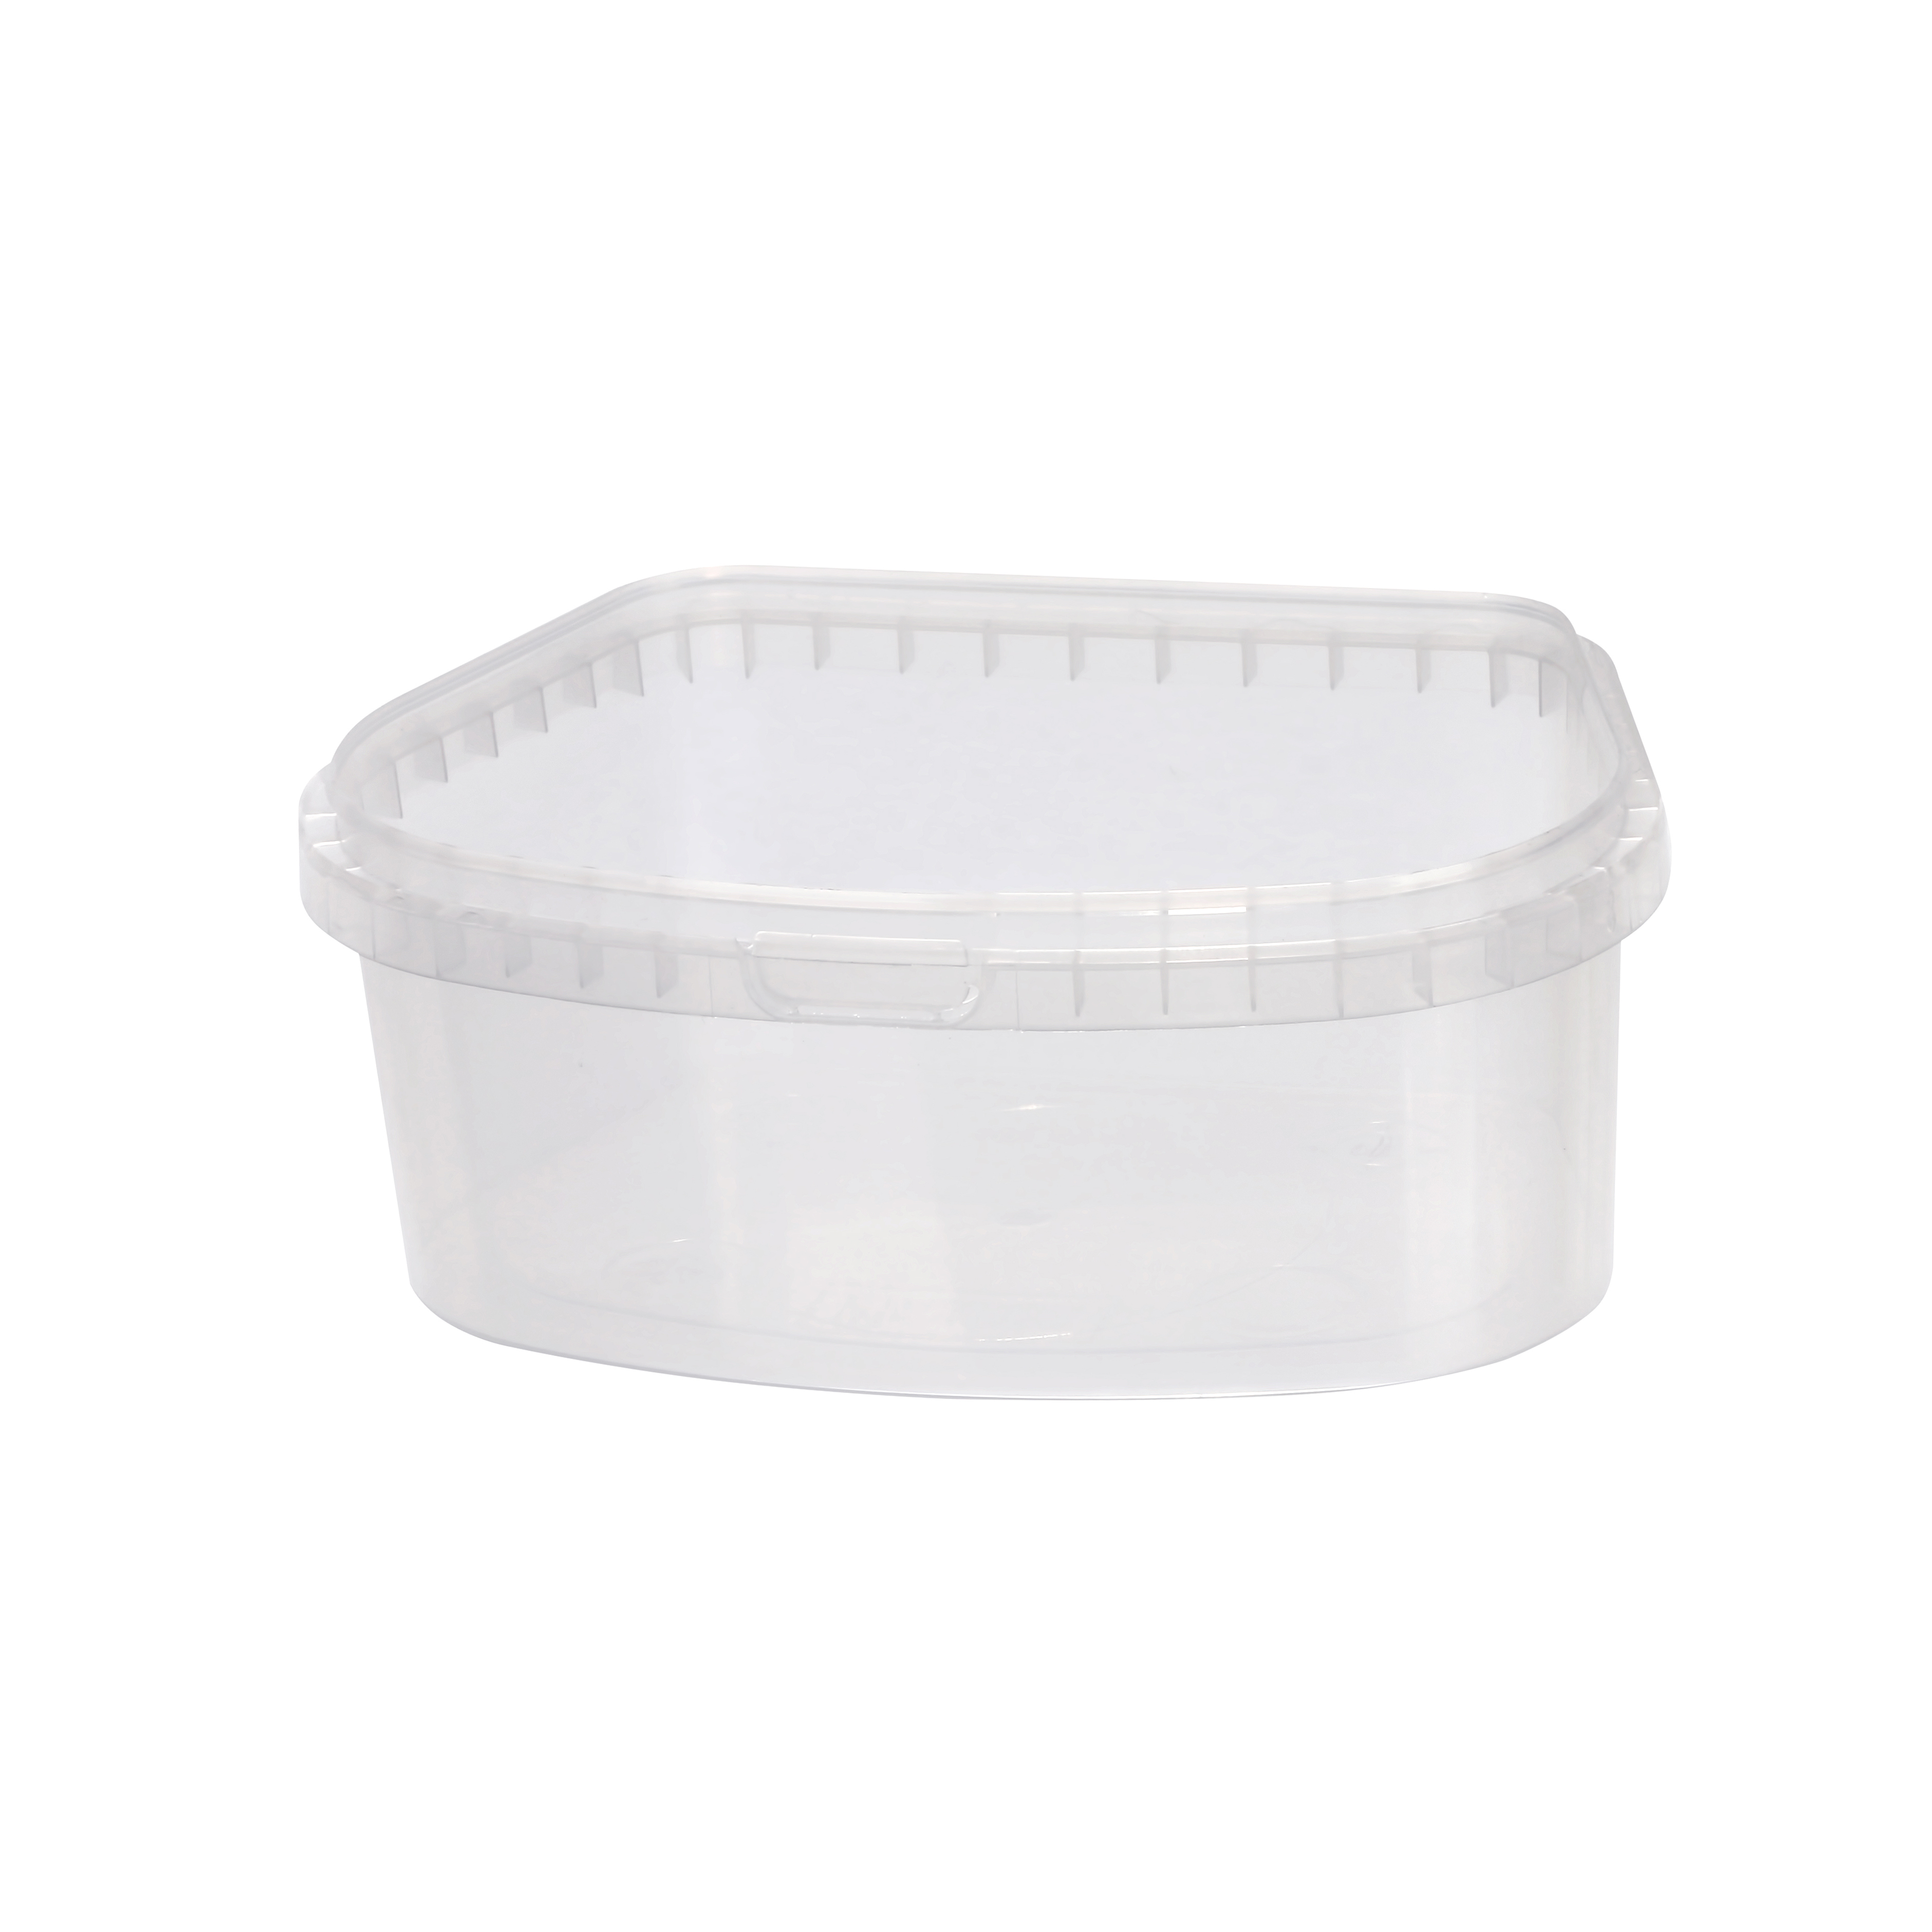 Polymeric tamper evident food containers created by Plastco keep products fresh